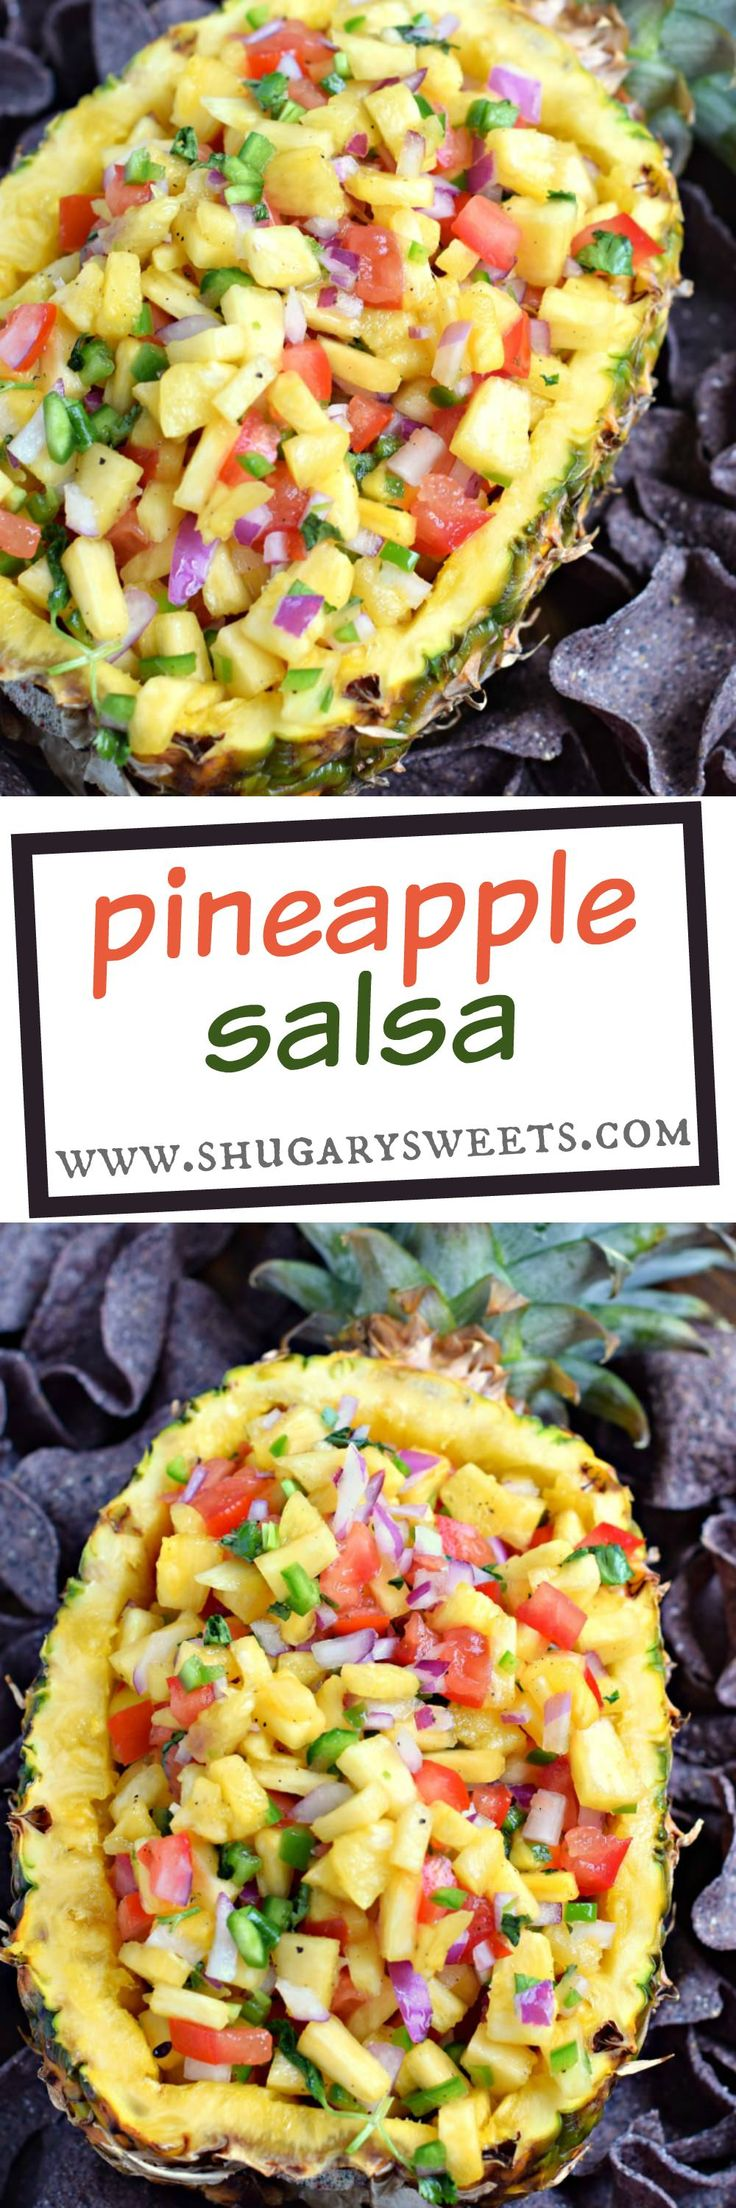 Tropical Pineapple Salsa is a spicy, sweet, colorful snack idea! So versatile, you can enjoy with tortilla chips or spoon it over your favorite grilled chicken or fish!: